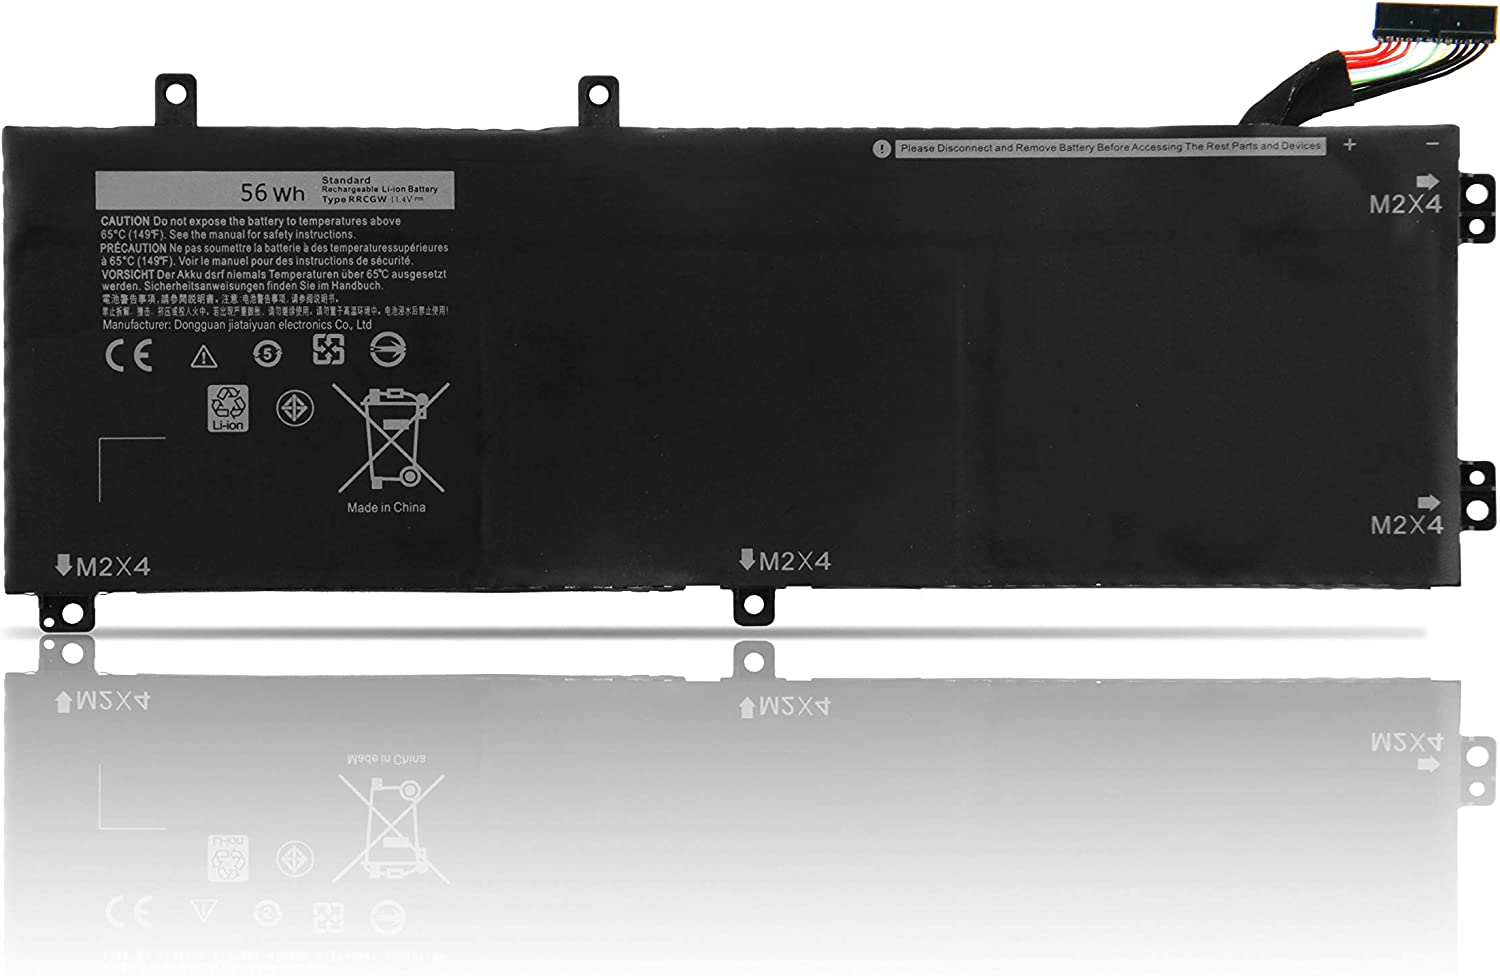 Fully RRCGW Replacement Laptop Battery Compatible with Dell XPS 15 9550 Precision 5510 RRCGW M7R96 62MJV - 11.4V 56Wh